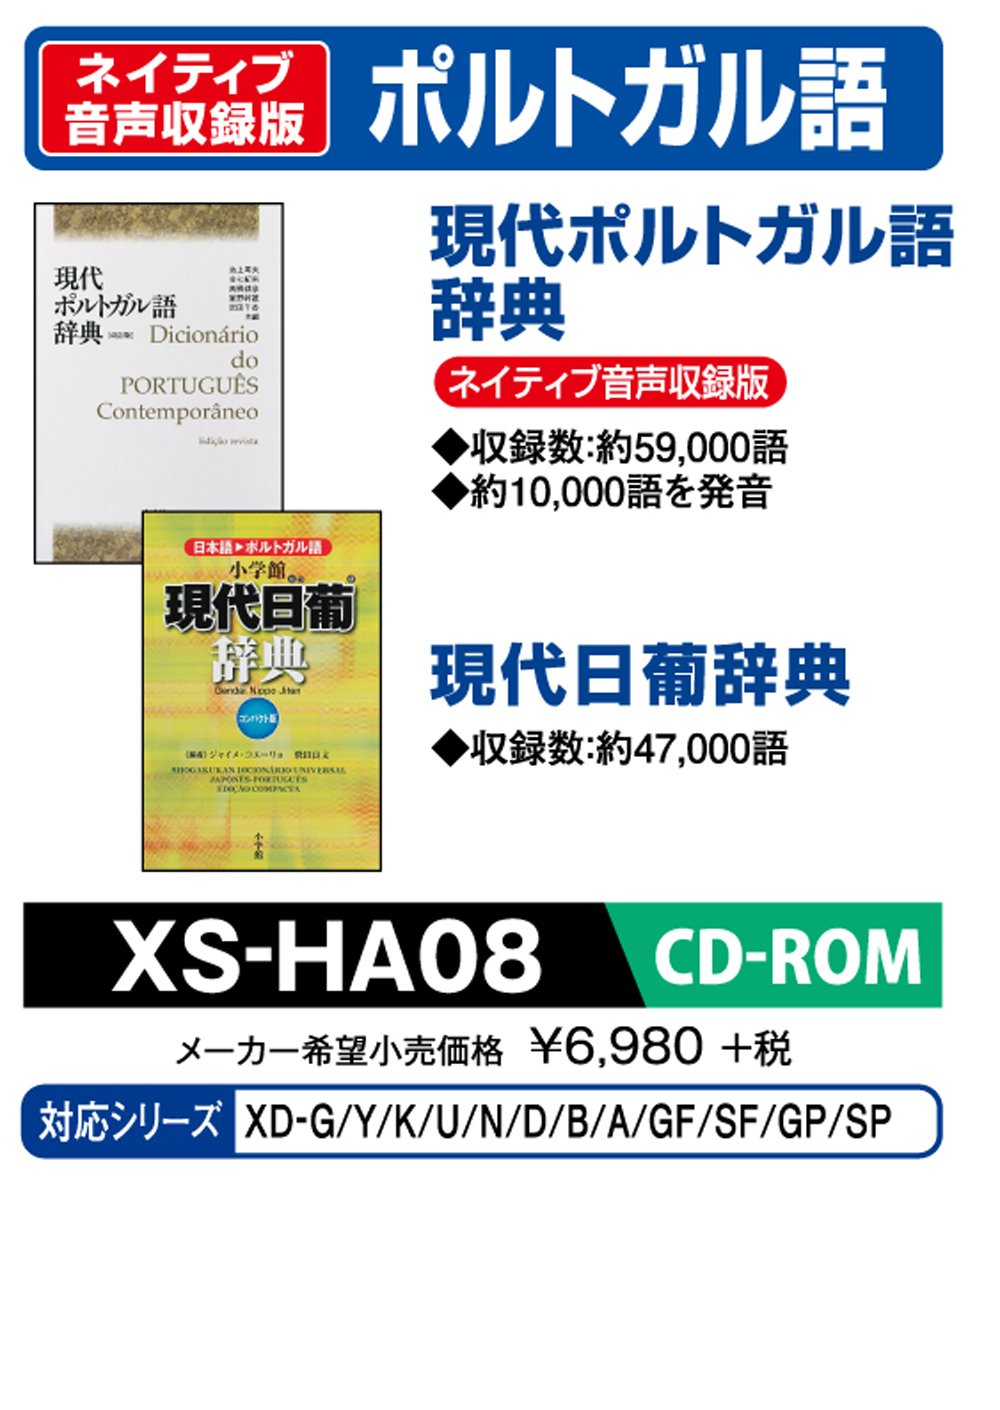 Casio electronic dictionary additional content CD-ROM version of modern Portuguese dictionary modern day •' Dictionary XS-HA08